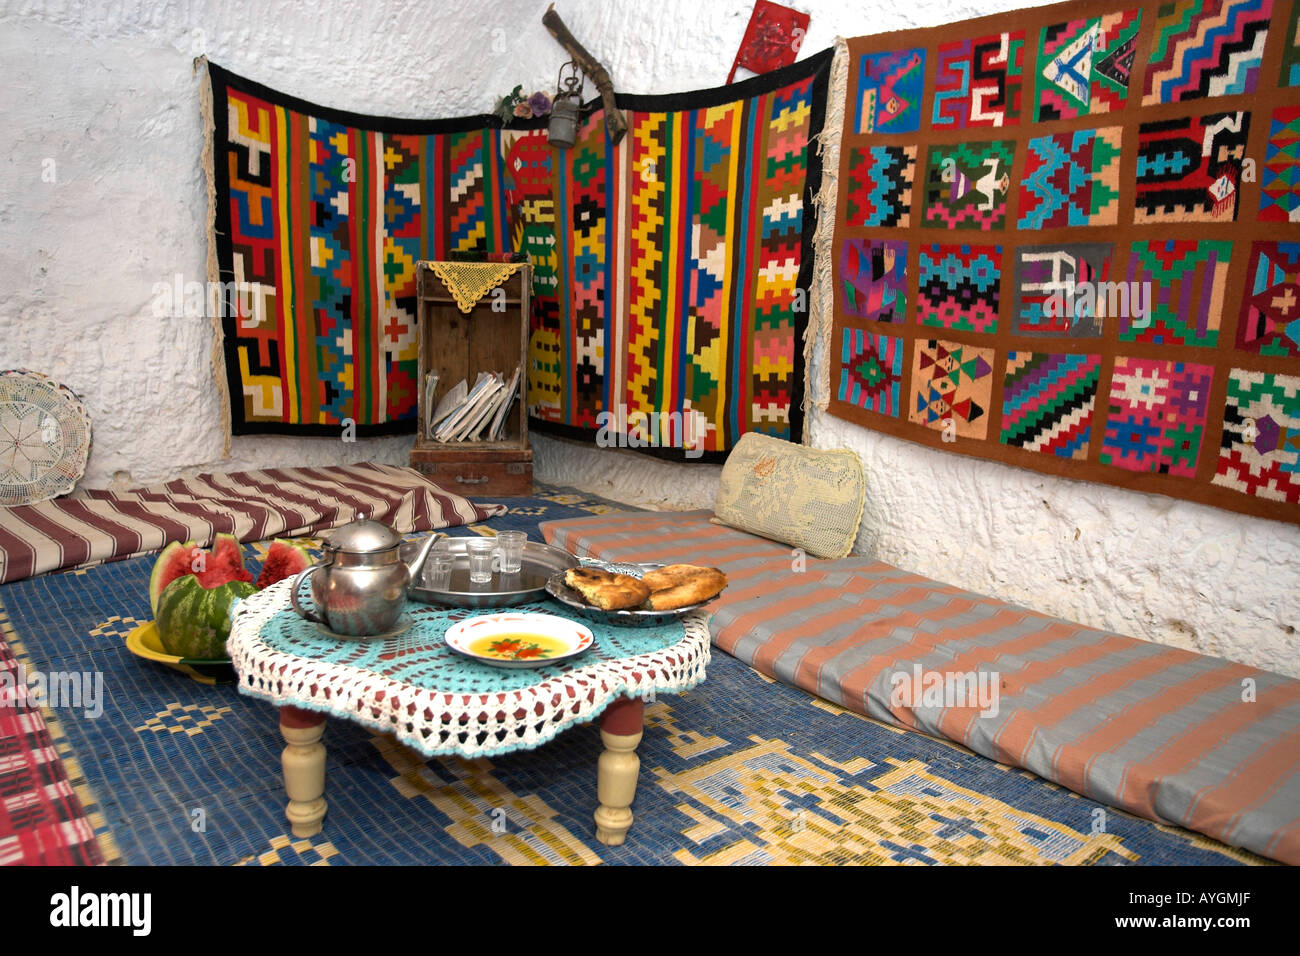 Tea bread and fruit set out for visitor in underground Berber troglodyte home with colourful wall hangings Matmata Stock Photo